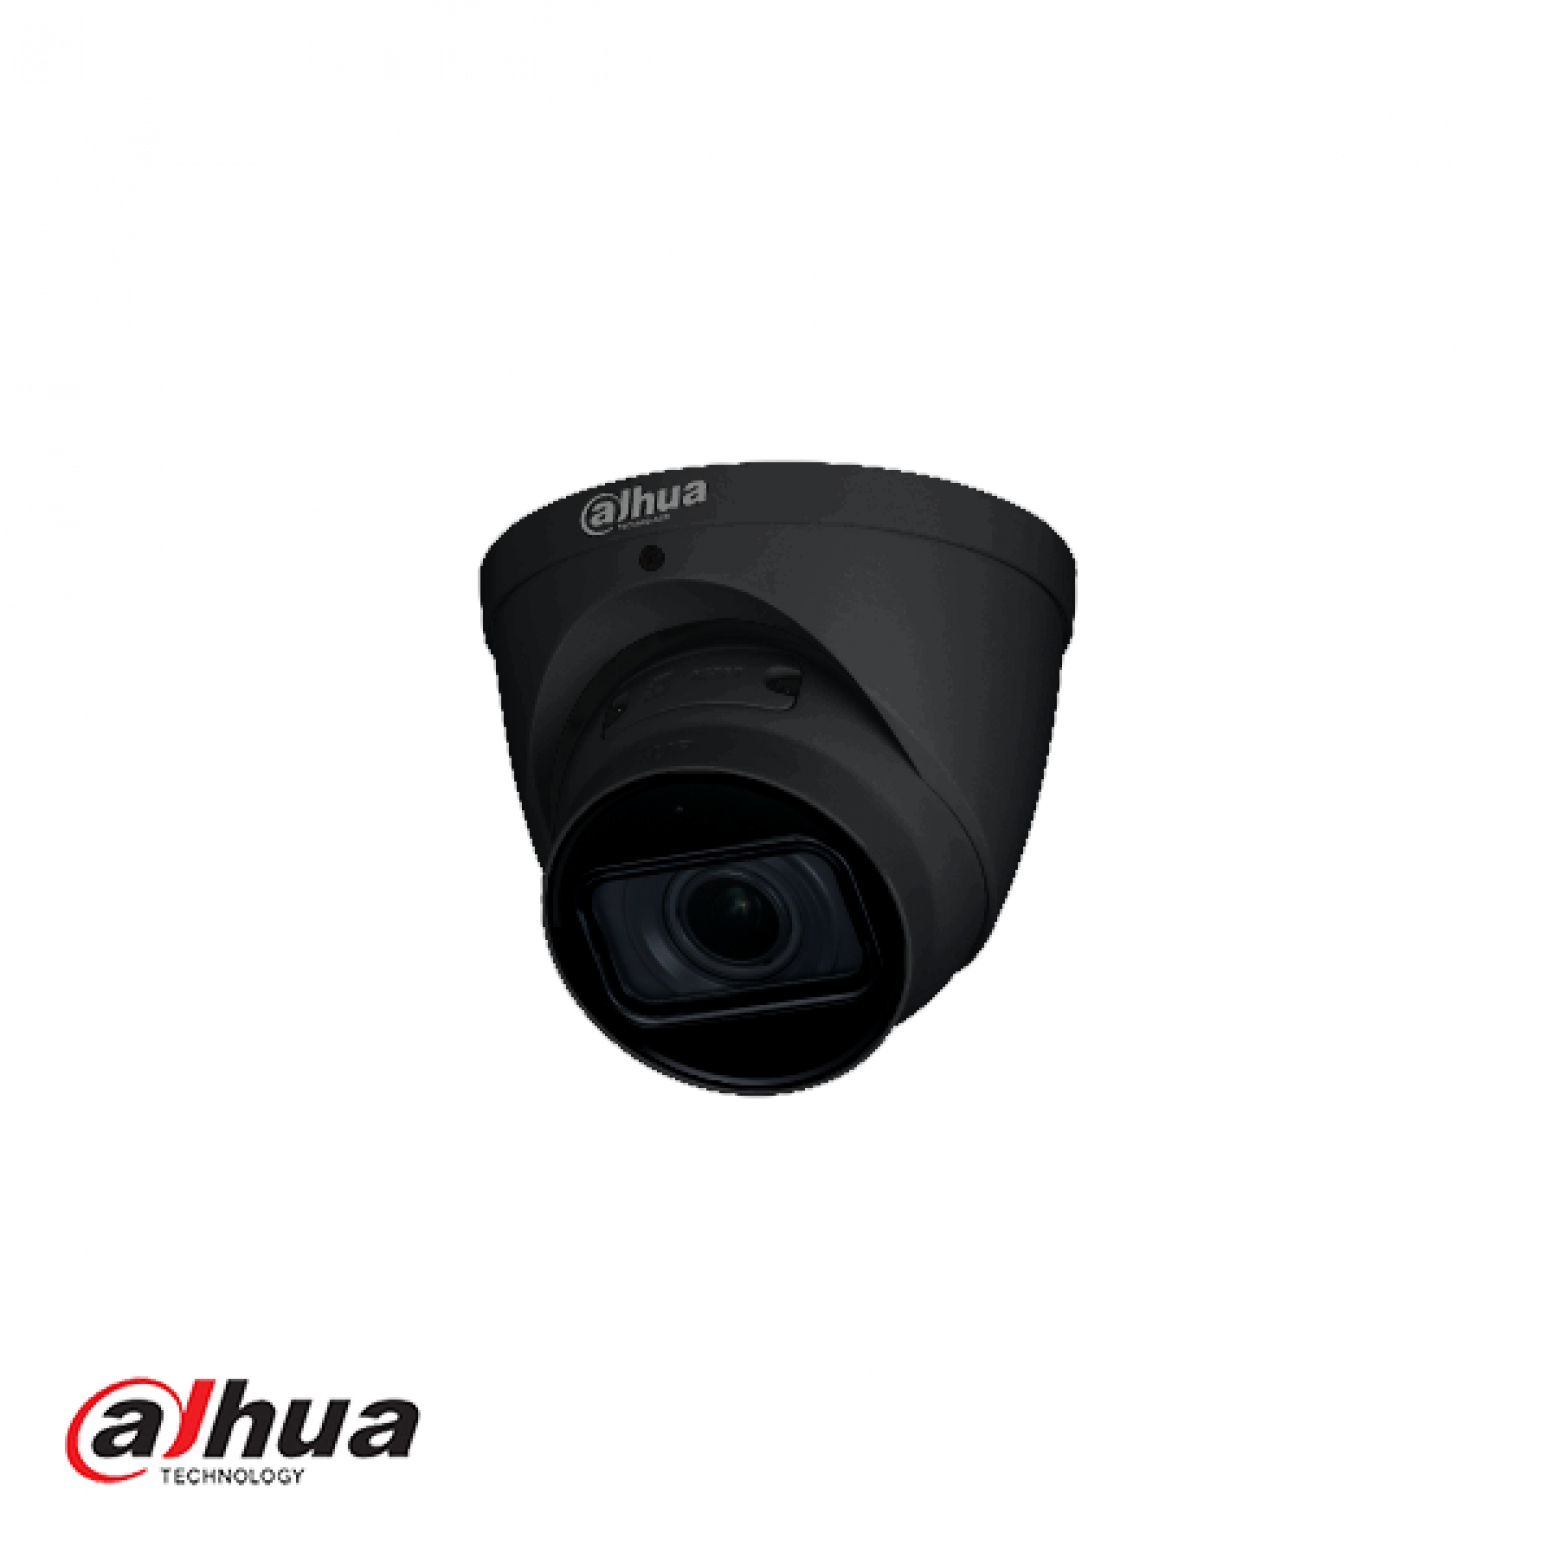 Dahua IPC-HDW3441T-ZAS-B 4MP Lite AI IR Vari-focal Eyeball Network Camera ZWART